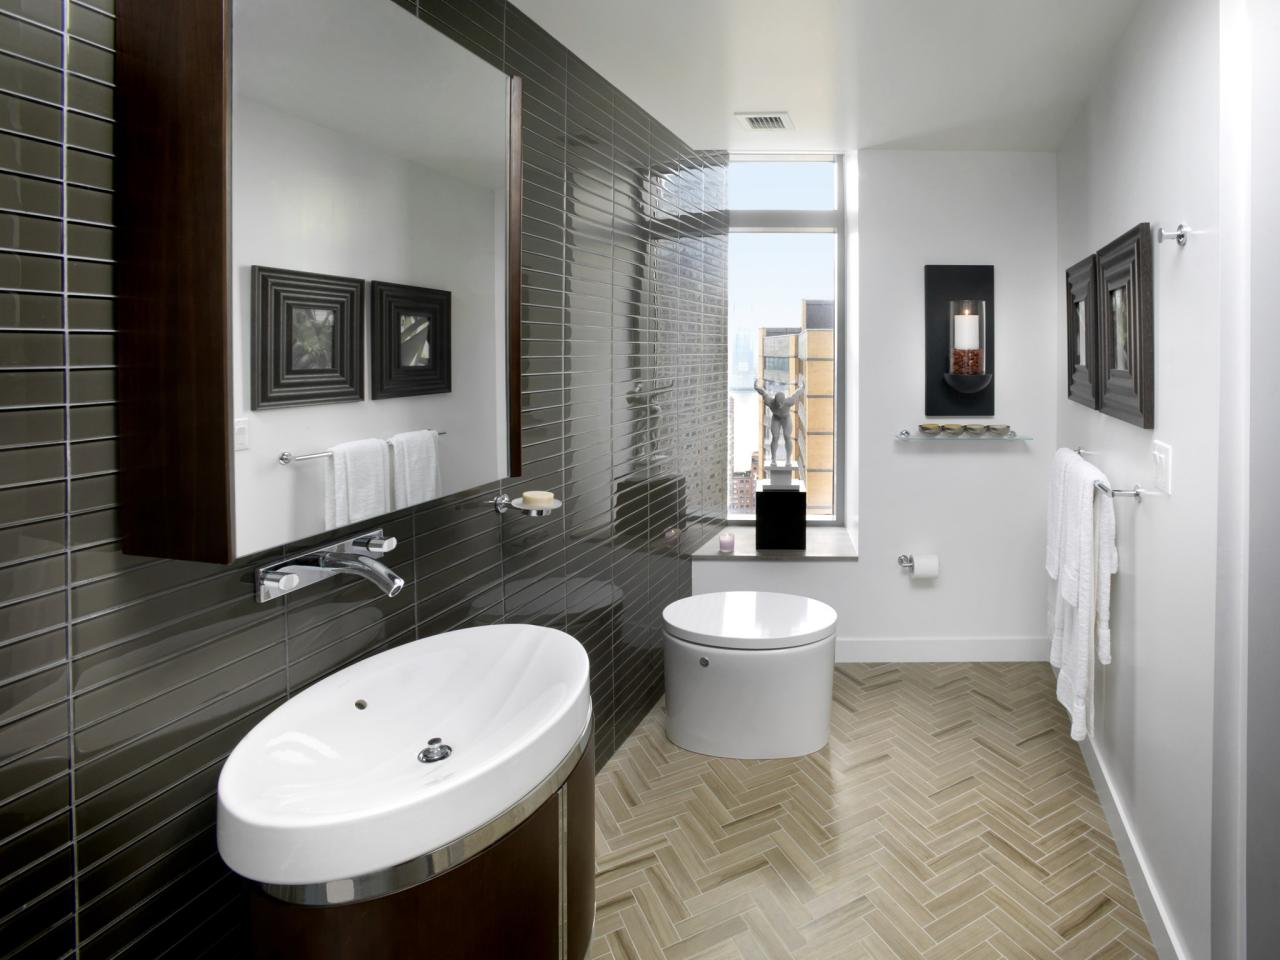 Office Bathroom Design - [livegoody.com]